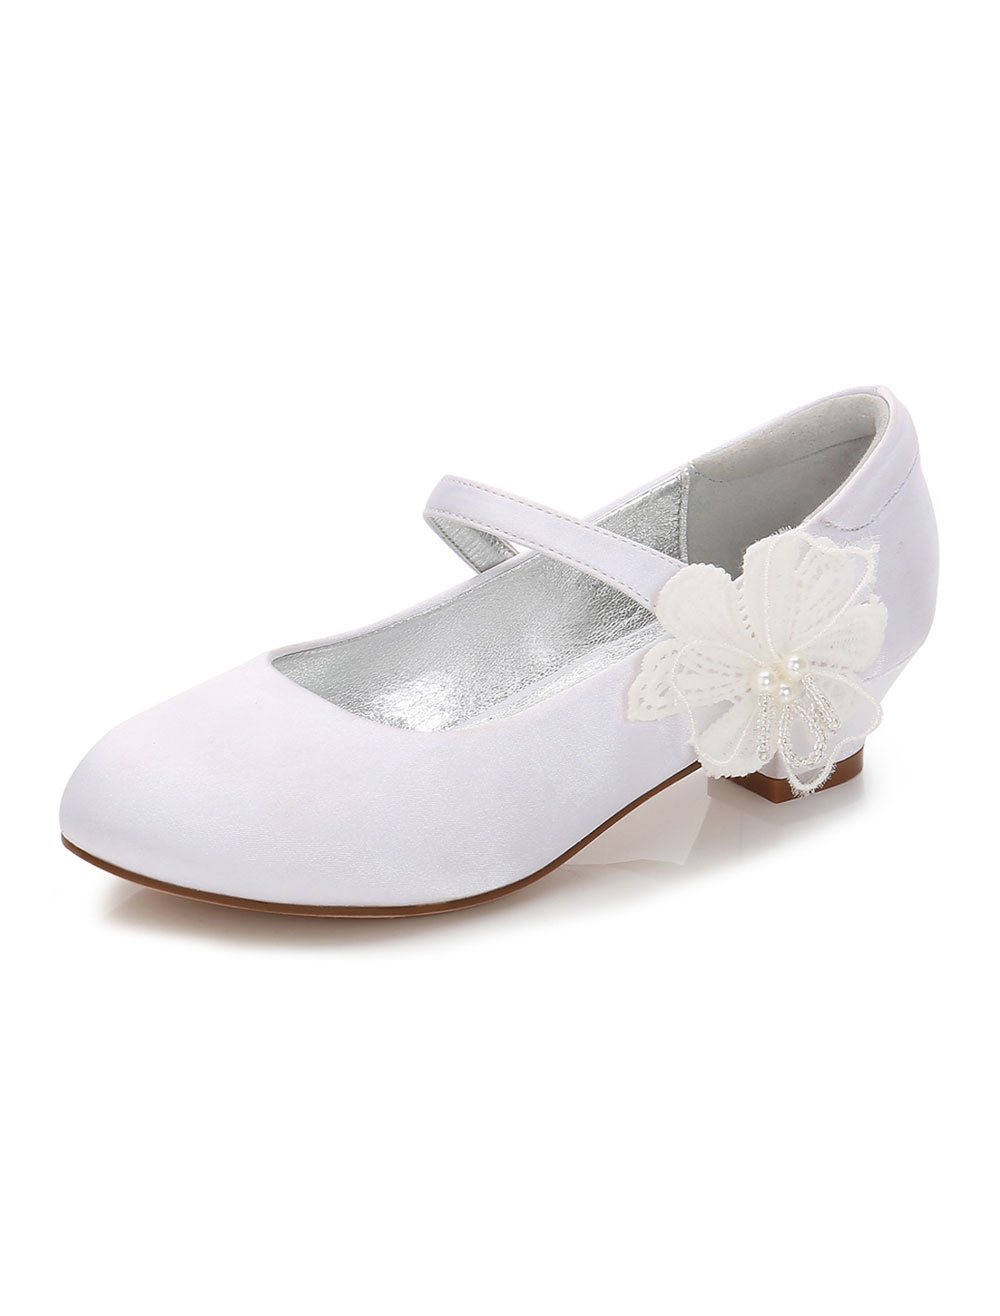 Wedding Flower Girl Shoes White Round Toe Flowers Detail Party Shoes Satin Girl Shoes